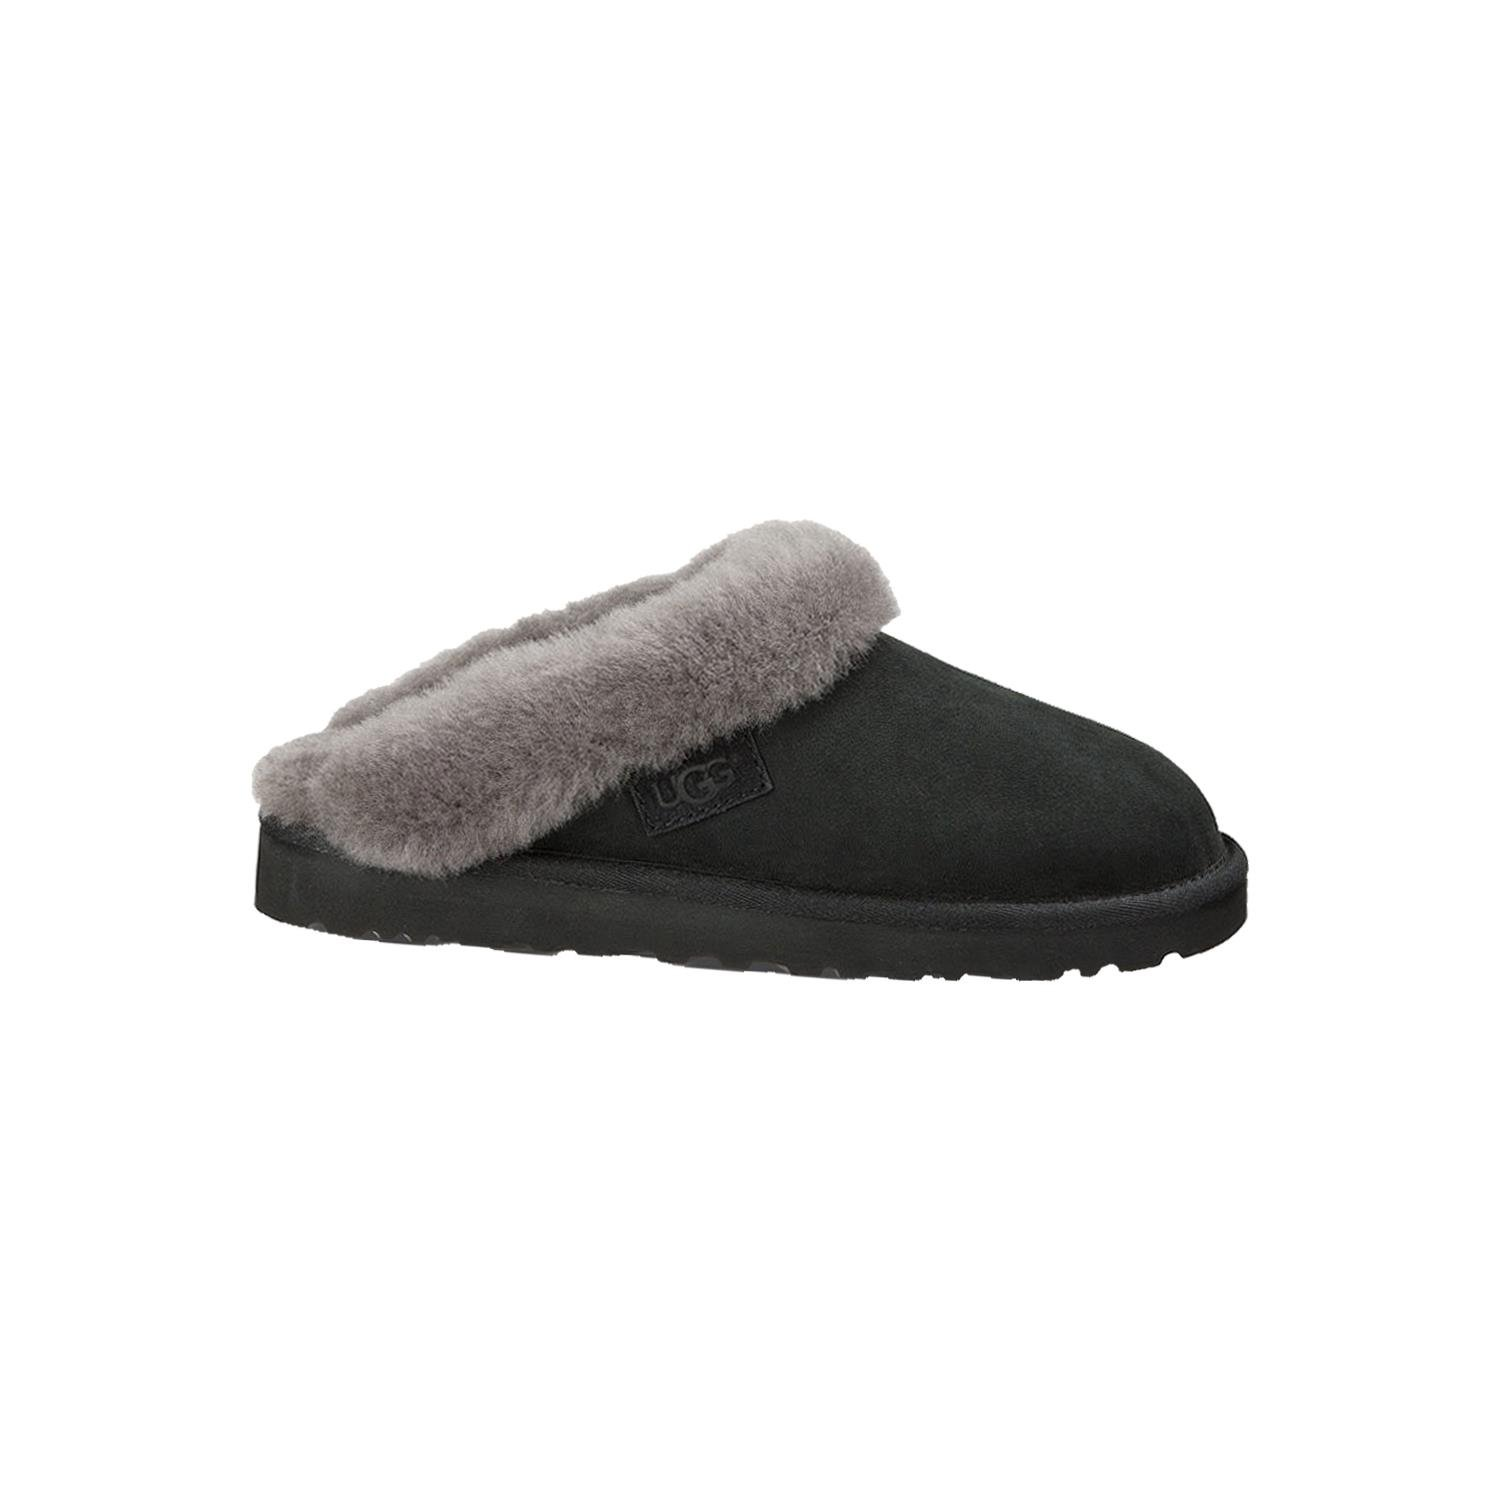 UGG Women's Cluggette Black Twinface Slipper 12 B (M)